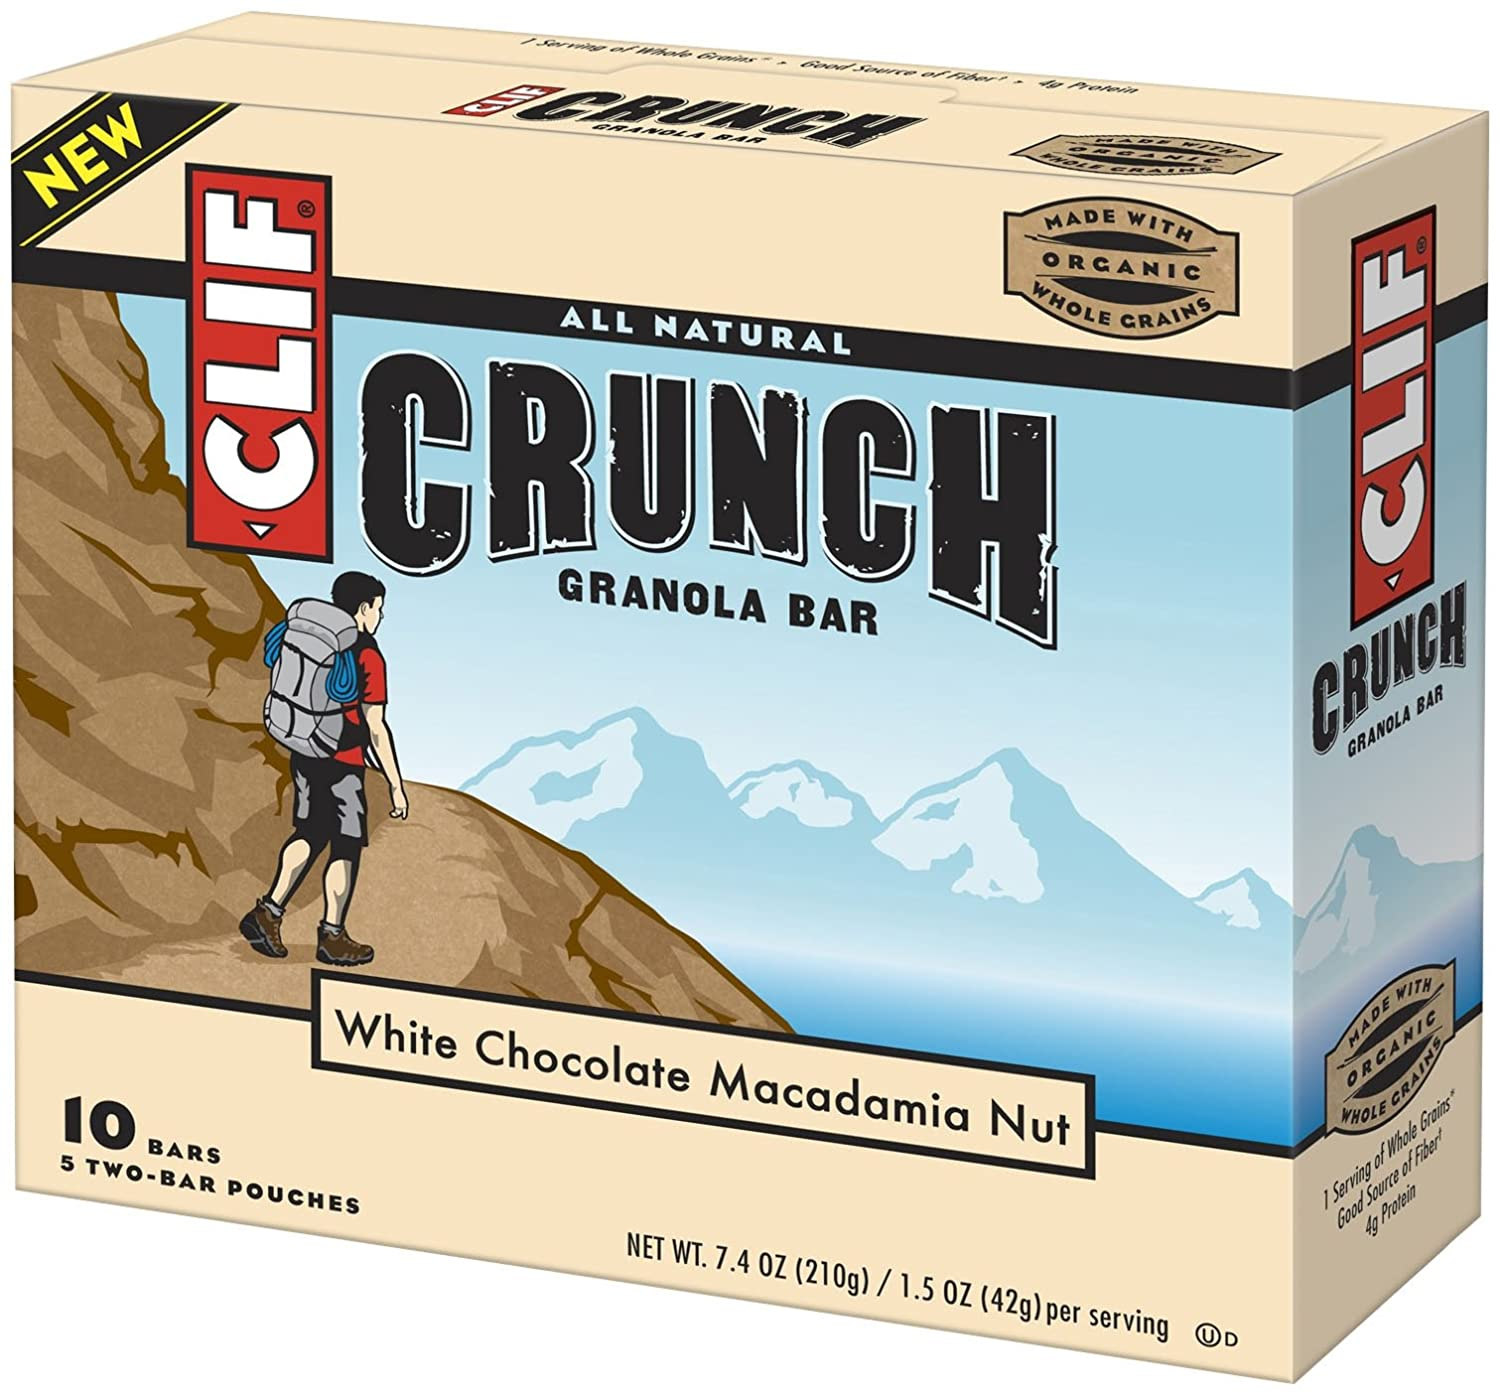 Amazon - Clif Crunch Granola Bar, White Chocolate Macadamia - $3.03